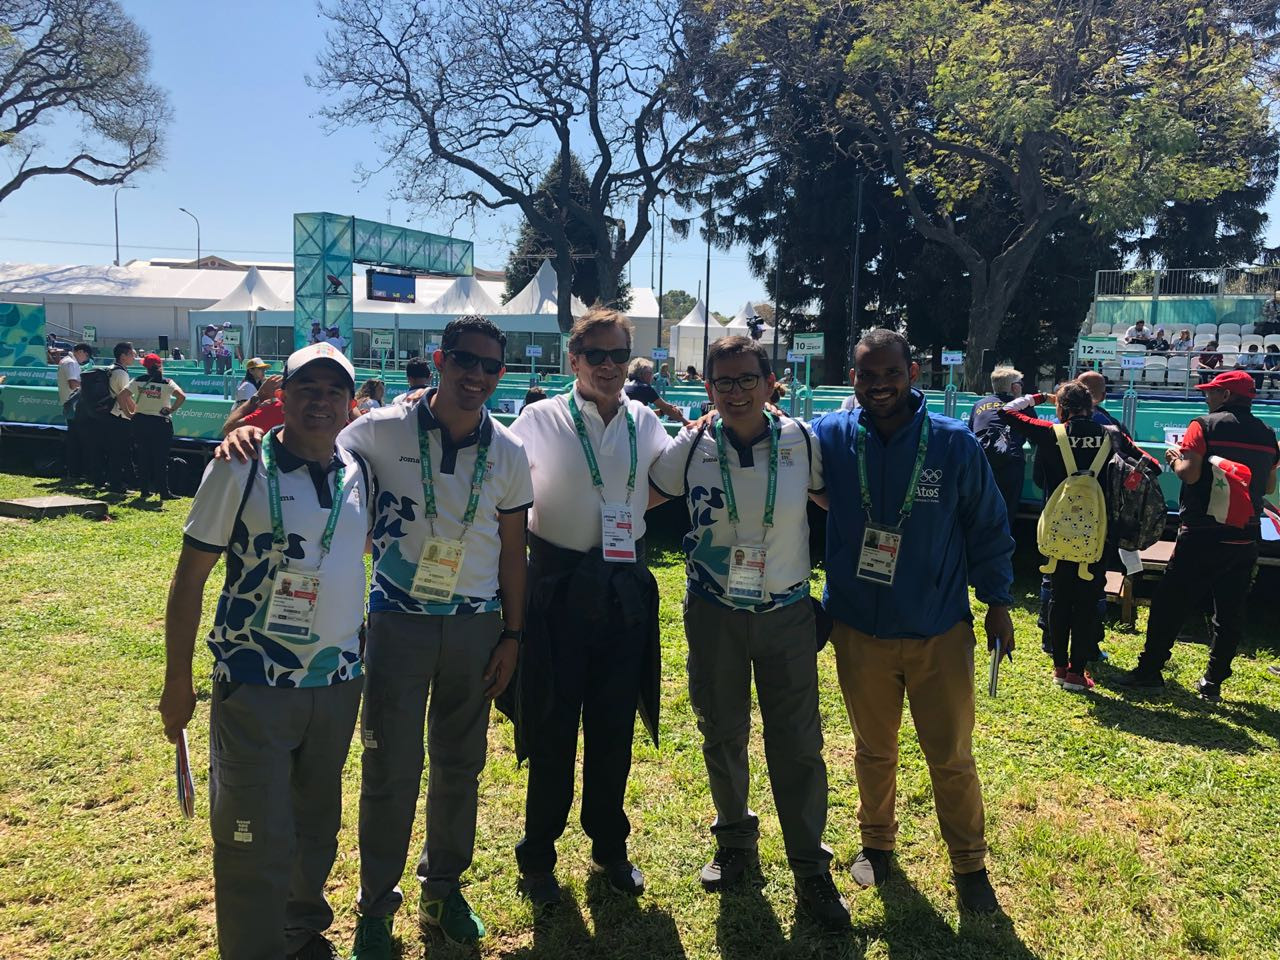 Lima 2019 learning plenty from visit to Summer Youth Olympic Games